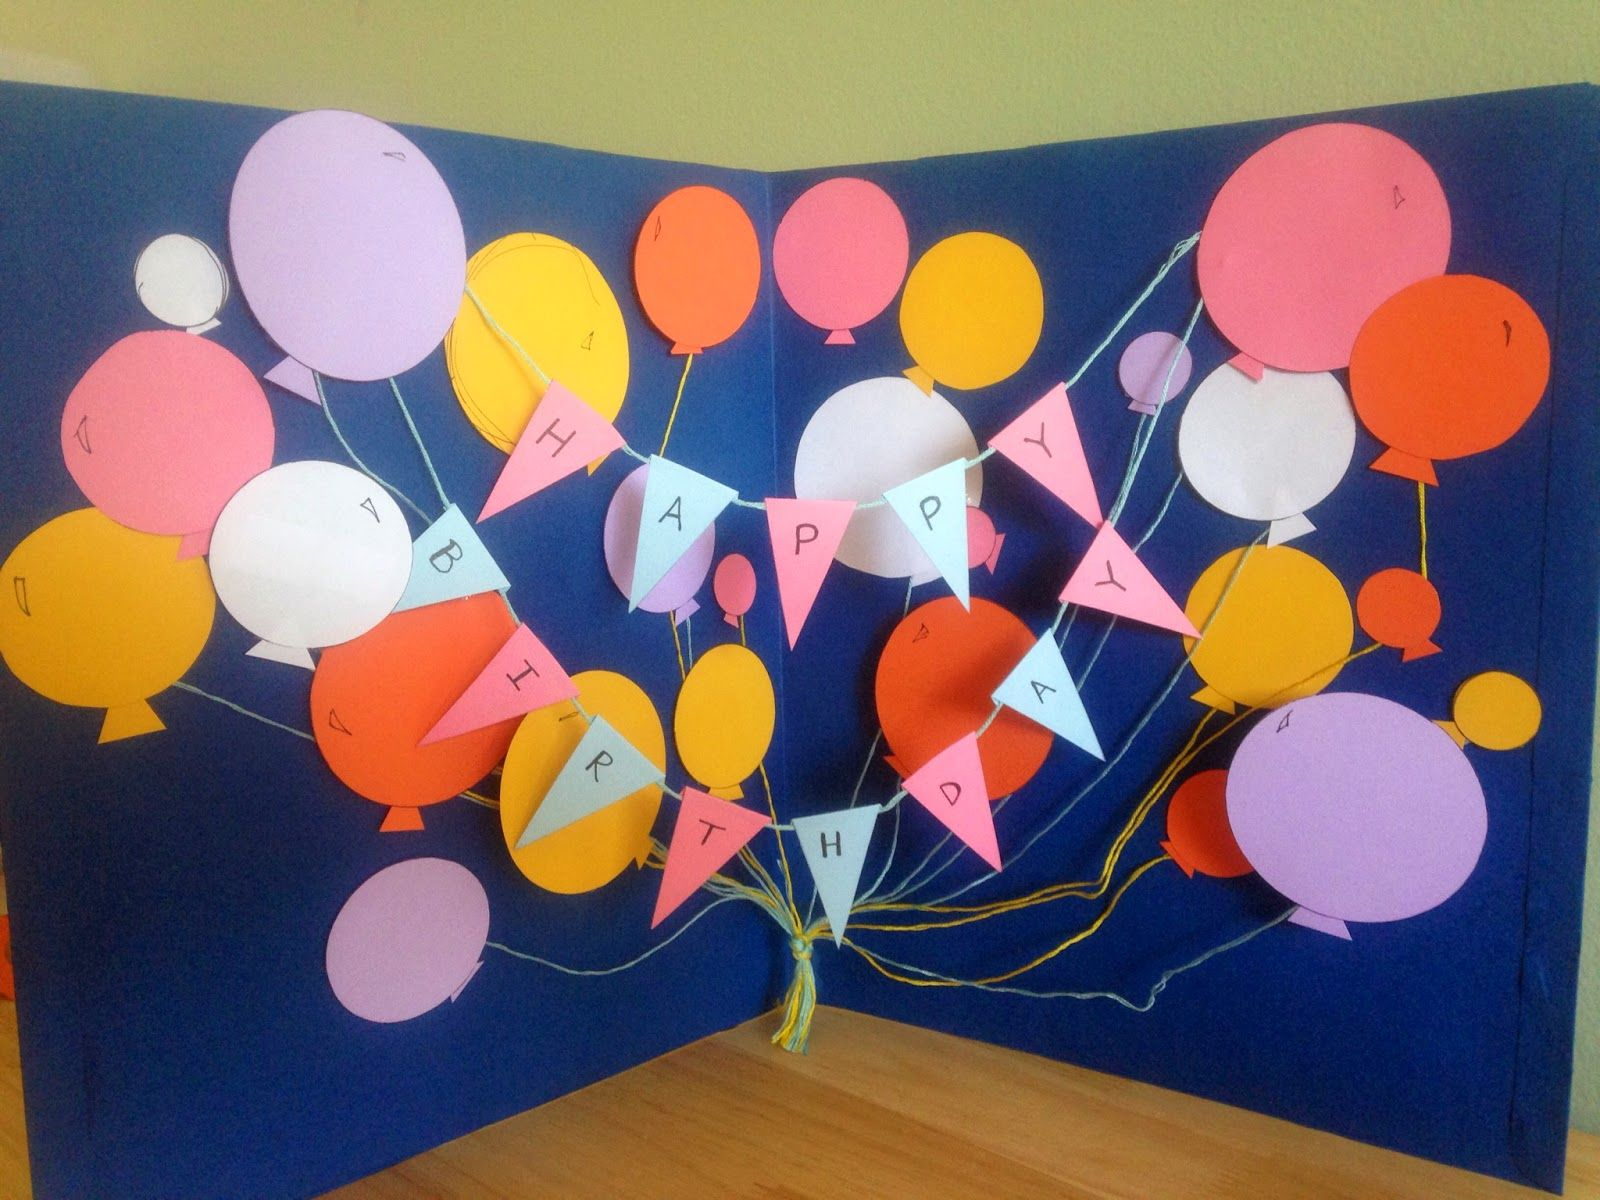 DIY Giant Happy Birthday Card (that's cheaper than